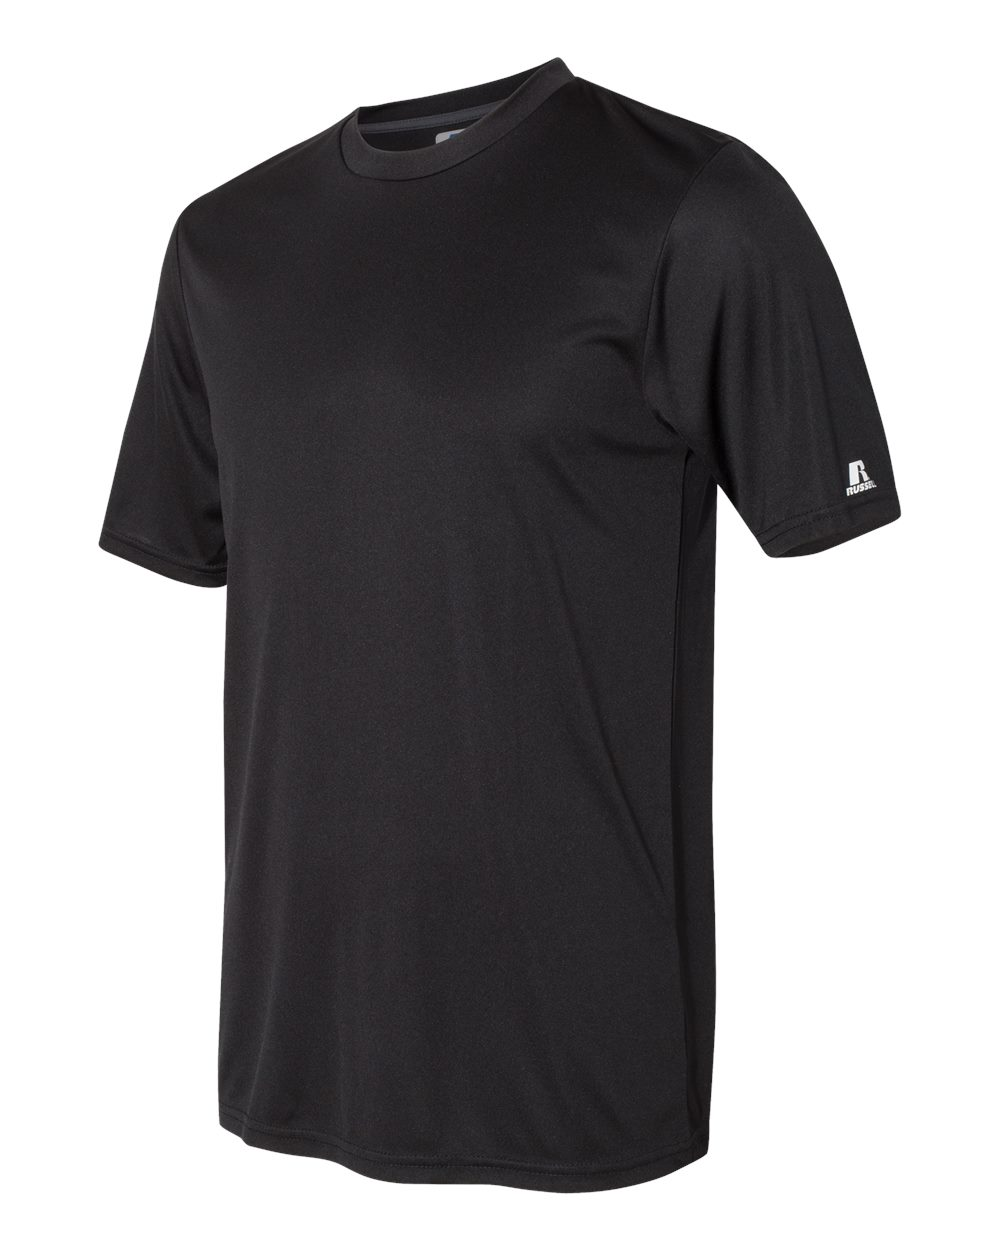 Russell Athletic Boys Youth Short Sleeve Performance Tee